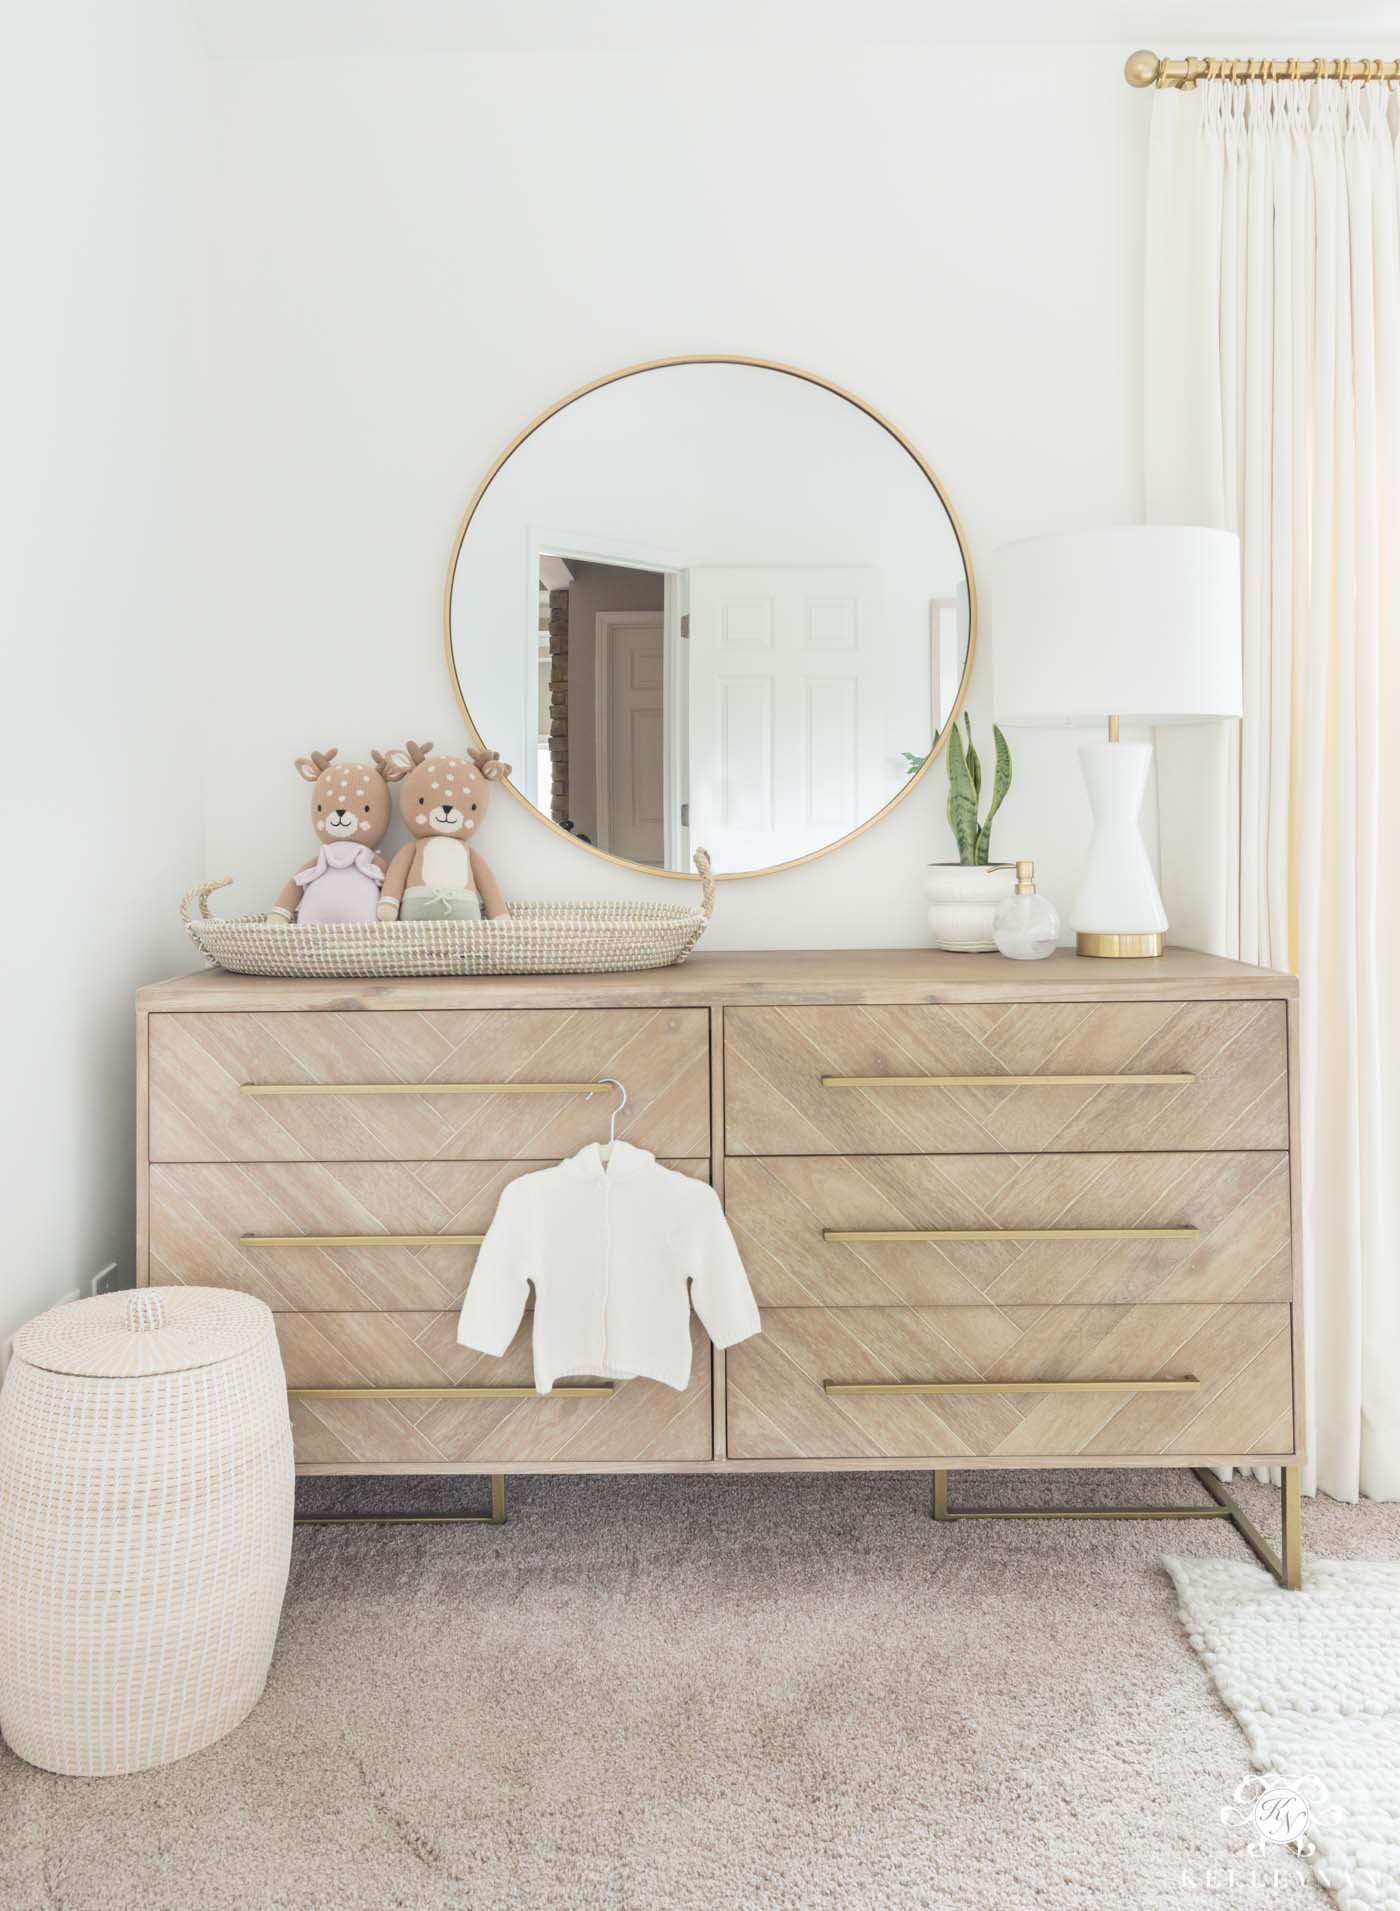 Nursery changing station on a double dresser with pretty woven changing basket